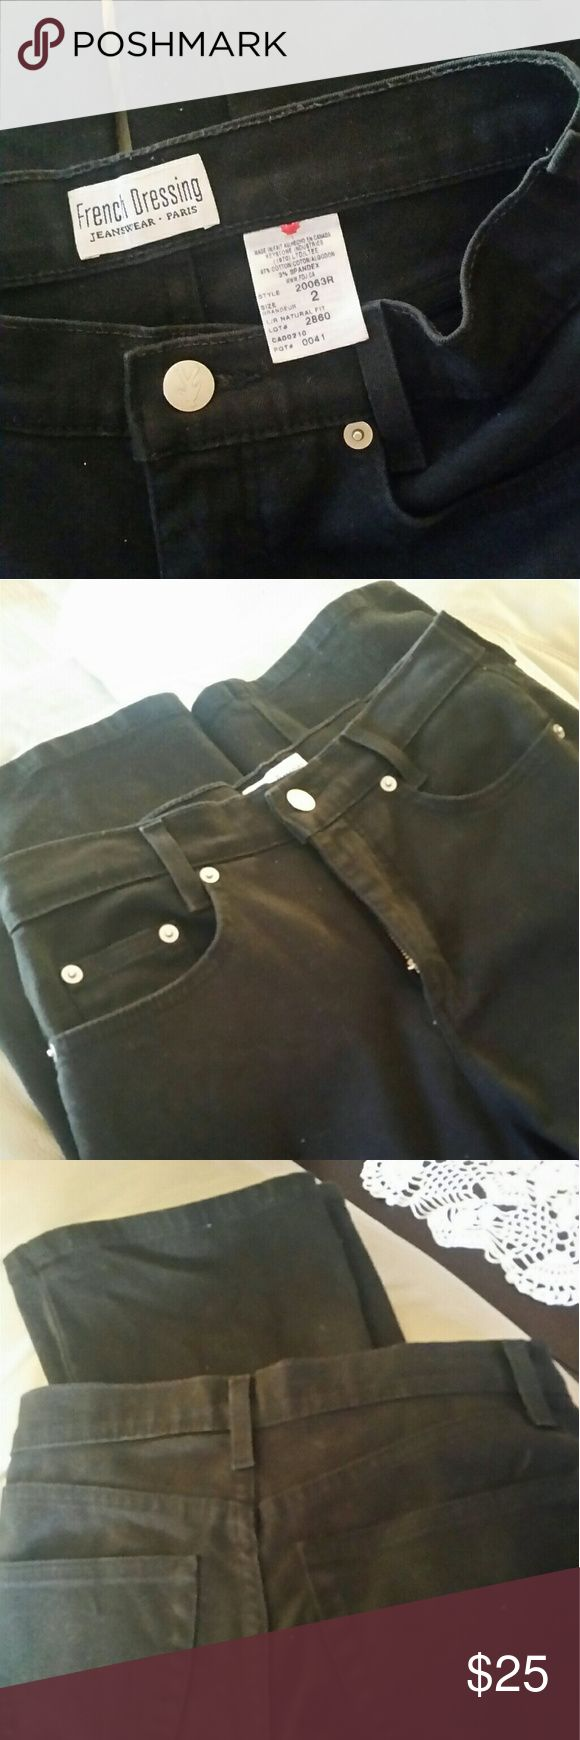 FRENCH DRESSING  JEANWEAR PARIS SIZE 2 French Dressing Jeanwear Paris.The color is darker then the pictures  shows due to lighting. The size is 2 and measurements are 14 1/2 waist and 32 long..SORRY NO TRADES French Dressing  Jeans